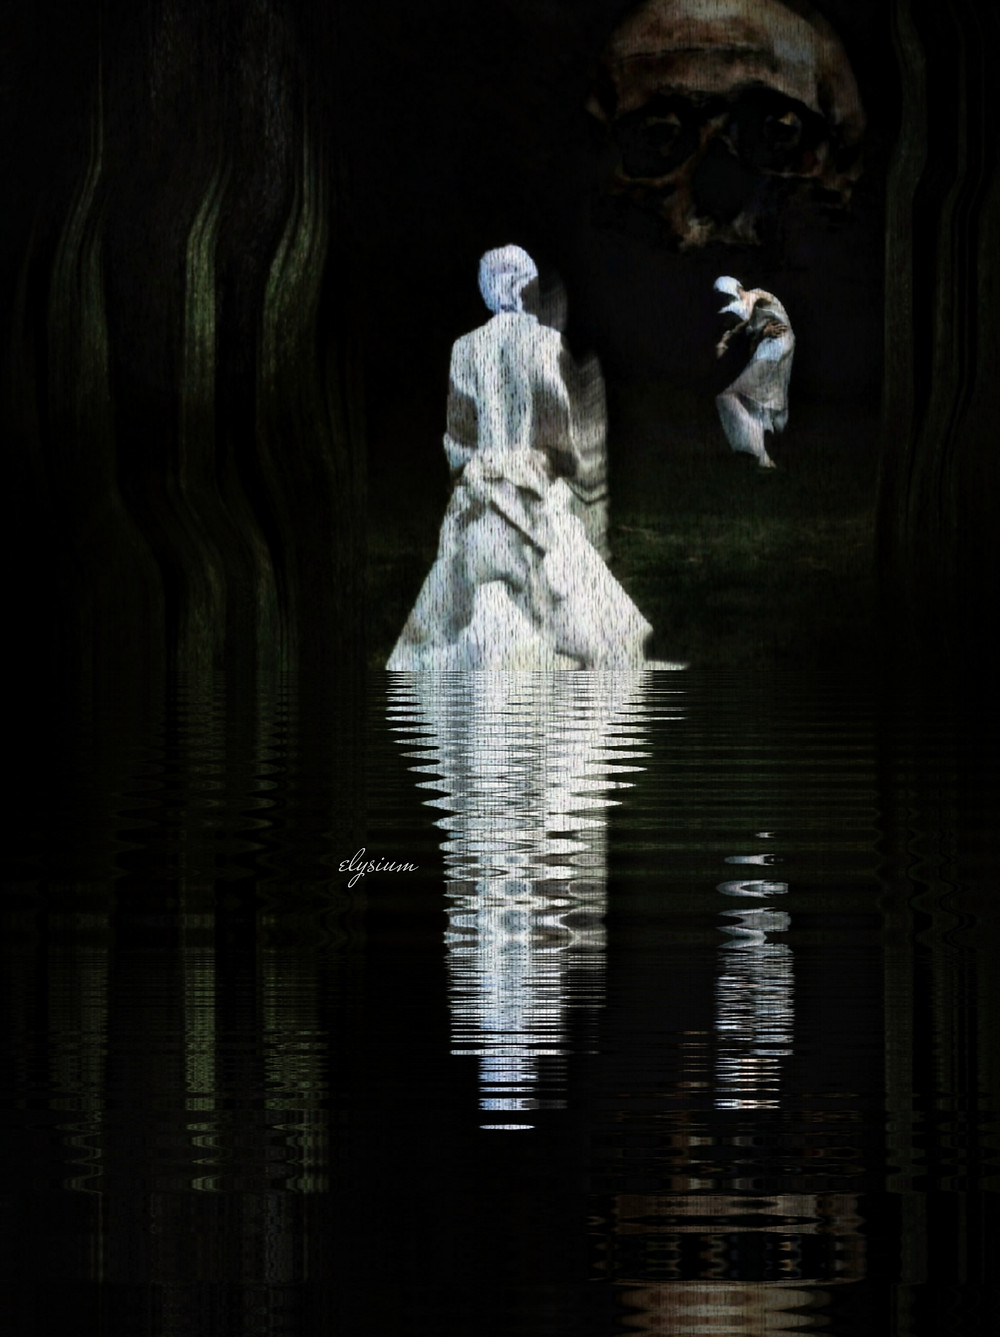 A figure standing in a dark pool, their pale figure reflected in the black water. The sky is black as well, and a skull and another pale figure can be seen in the background.